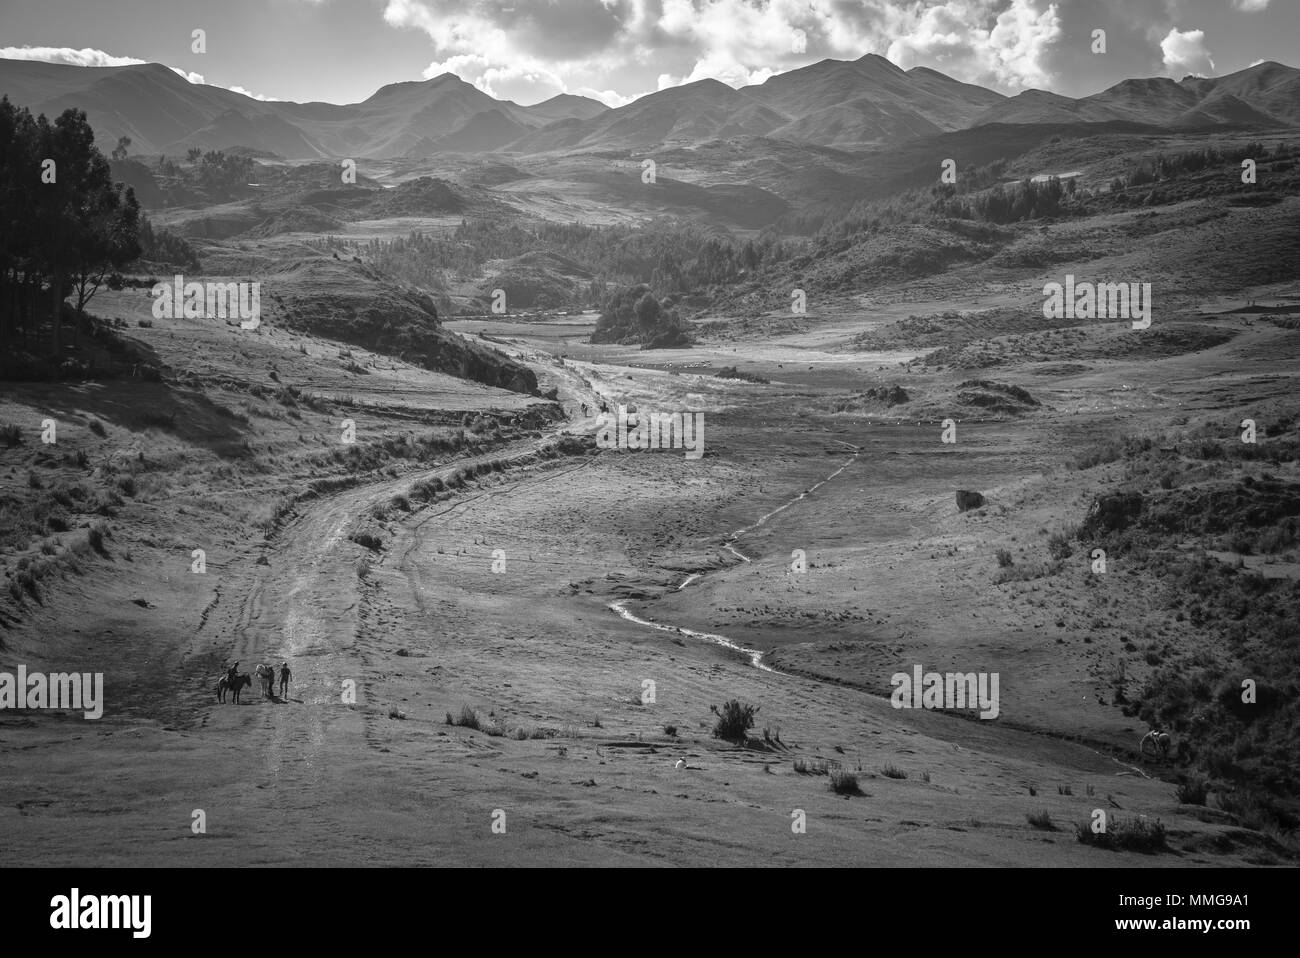 Cusco Region Outskirts Area around the City - Stock Image